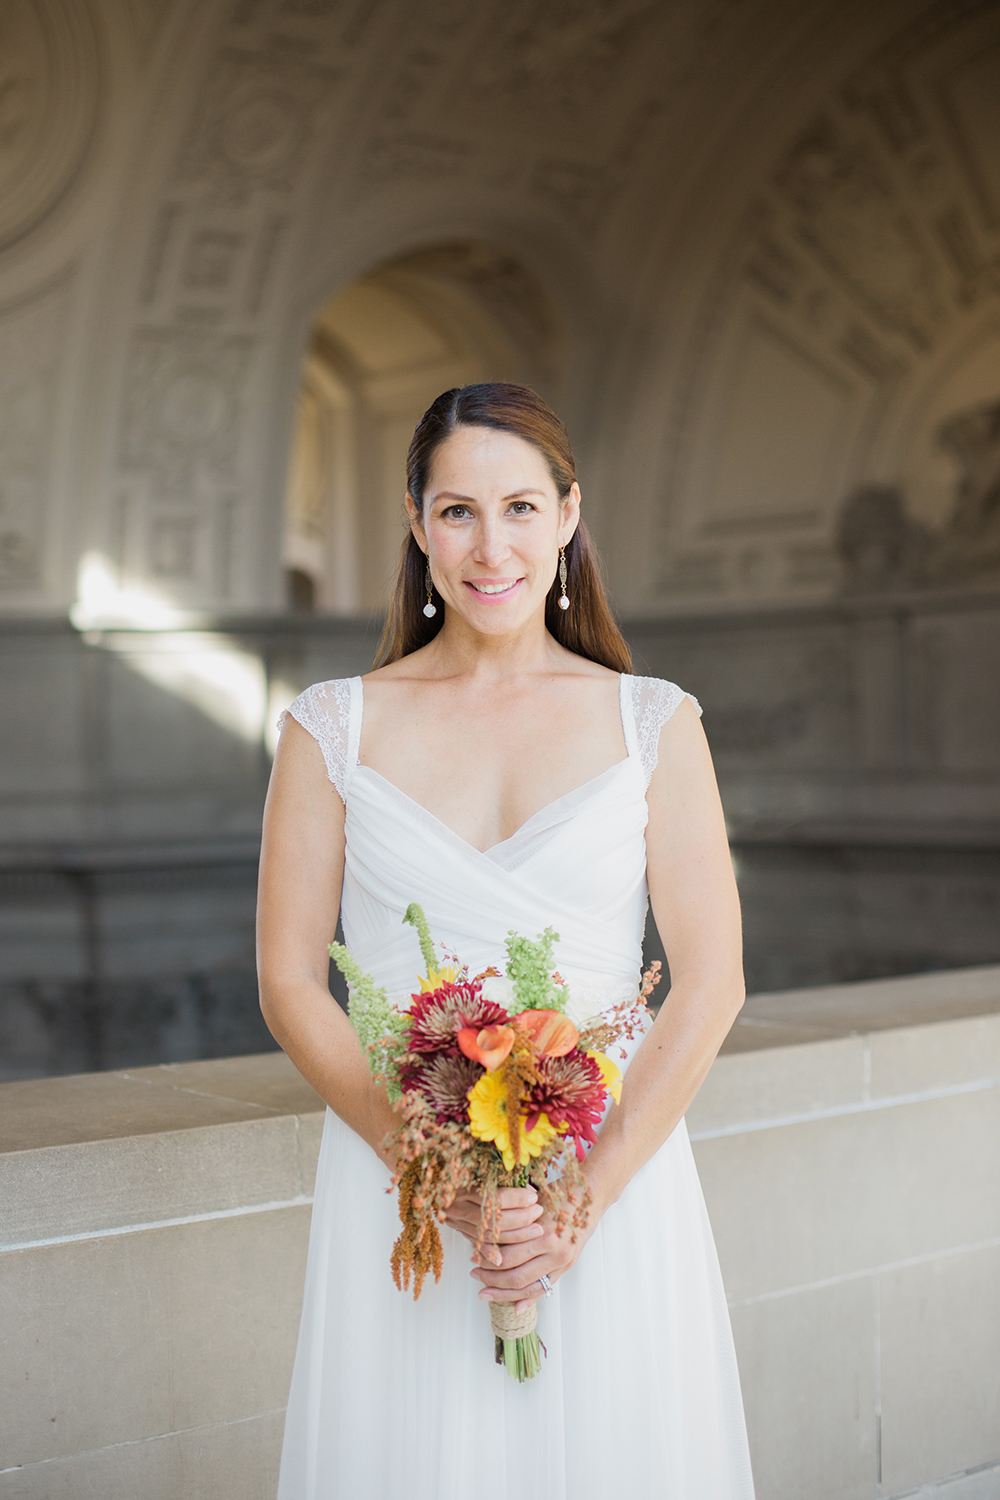 Bride portrait after eloping in San Francisco City Hall.